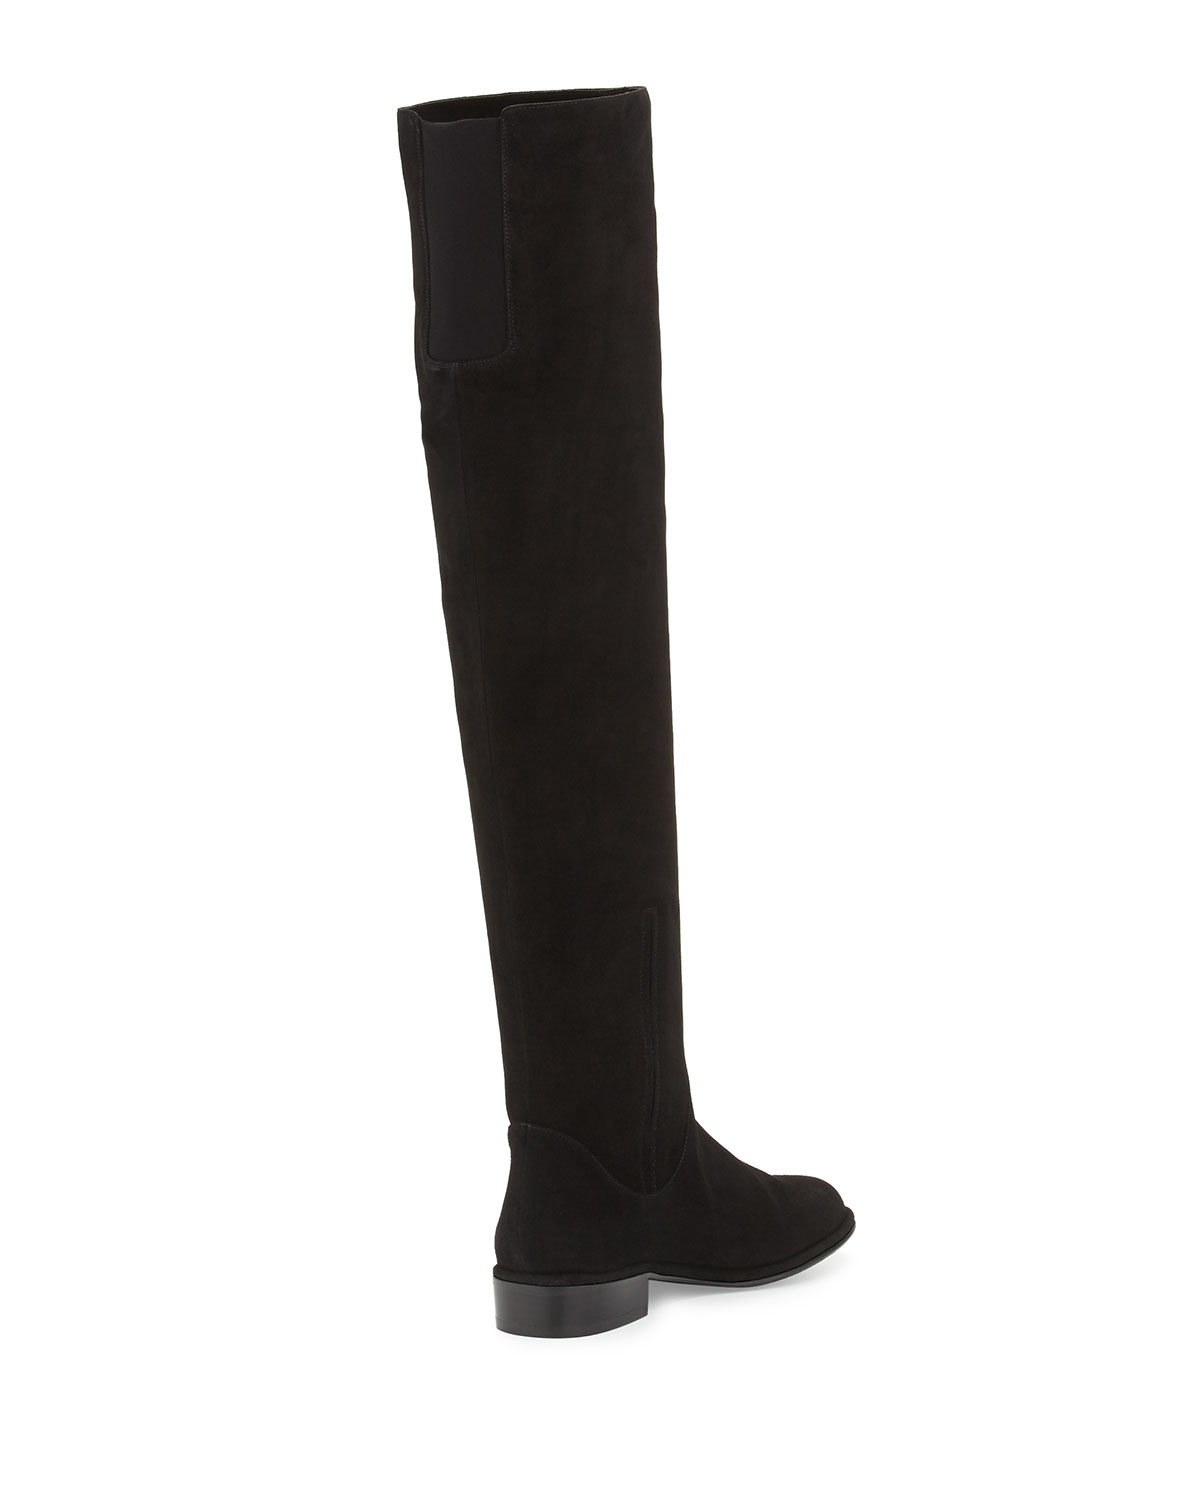 stuart weitzman rockerchic flat suede boot in black lyst